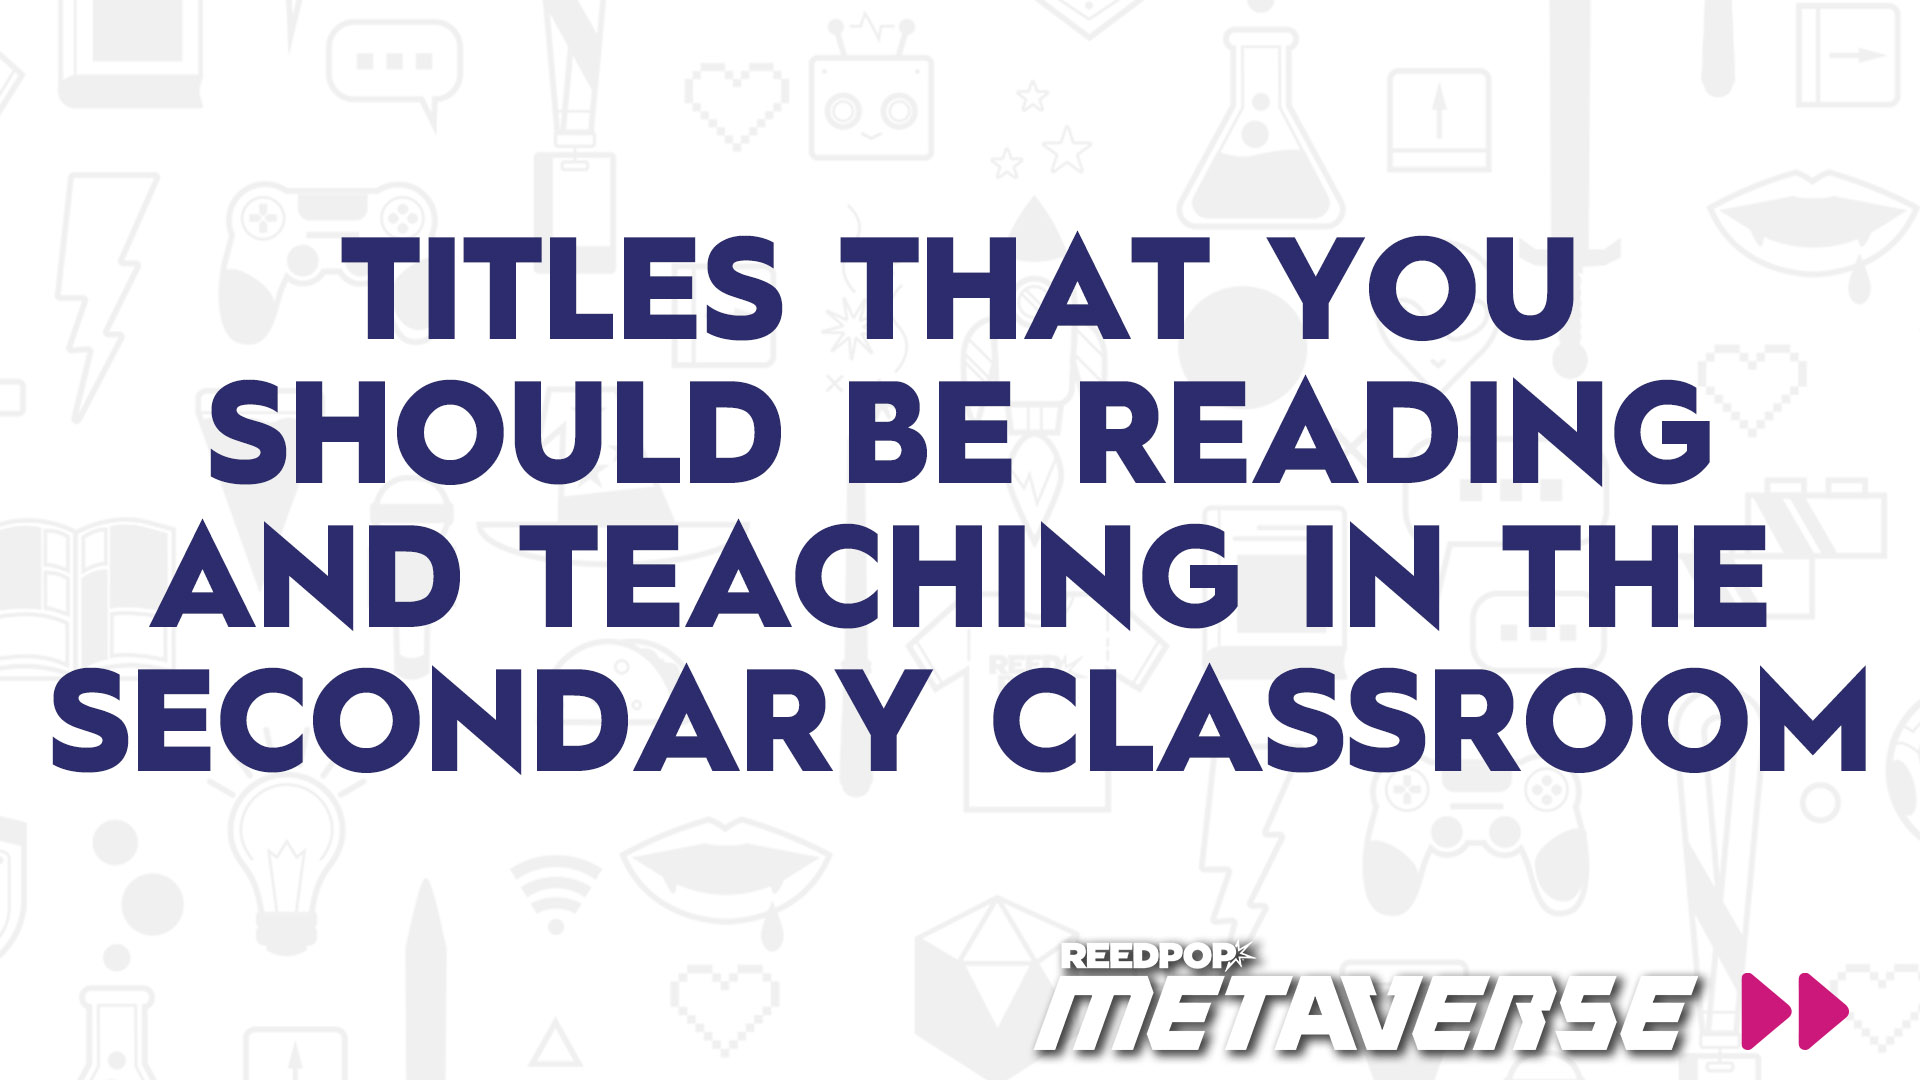 Image for Titles That You Should Be Reading And Teaching in the Secondary Classroom